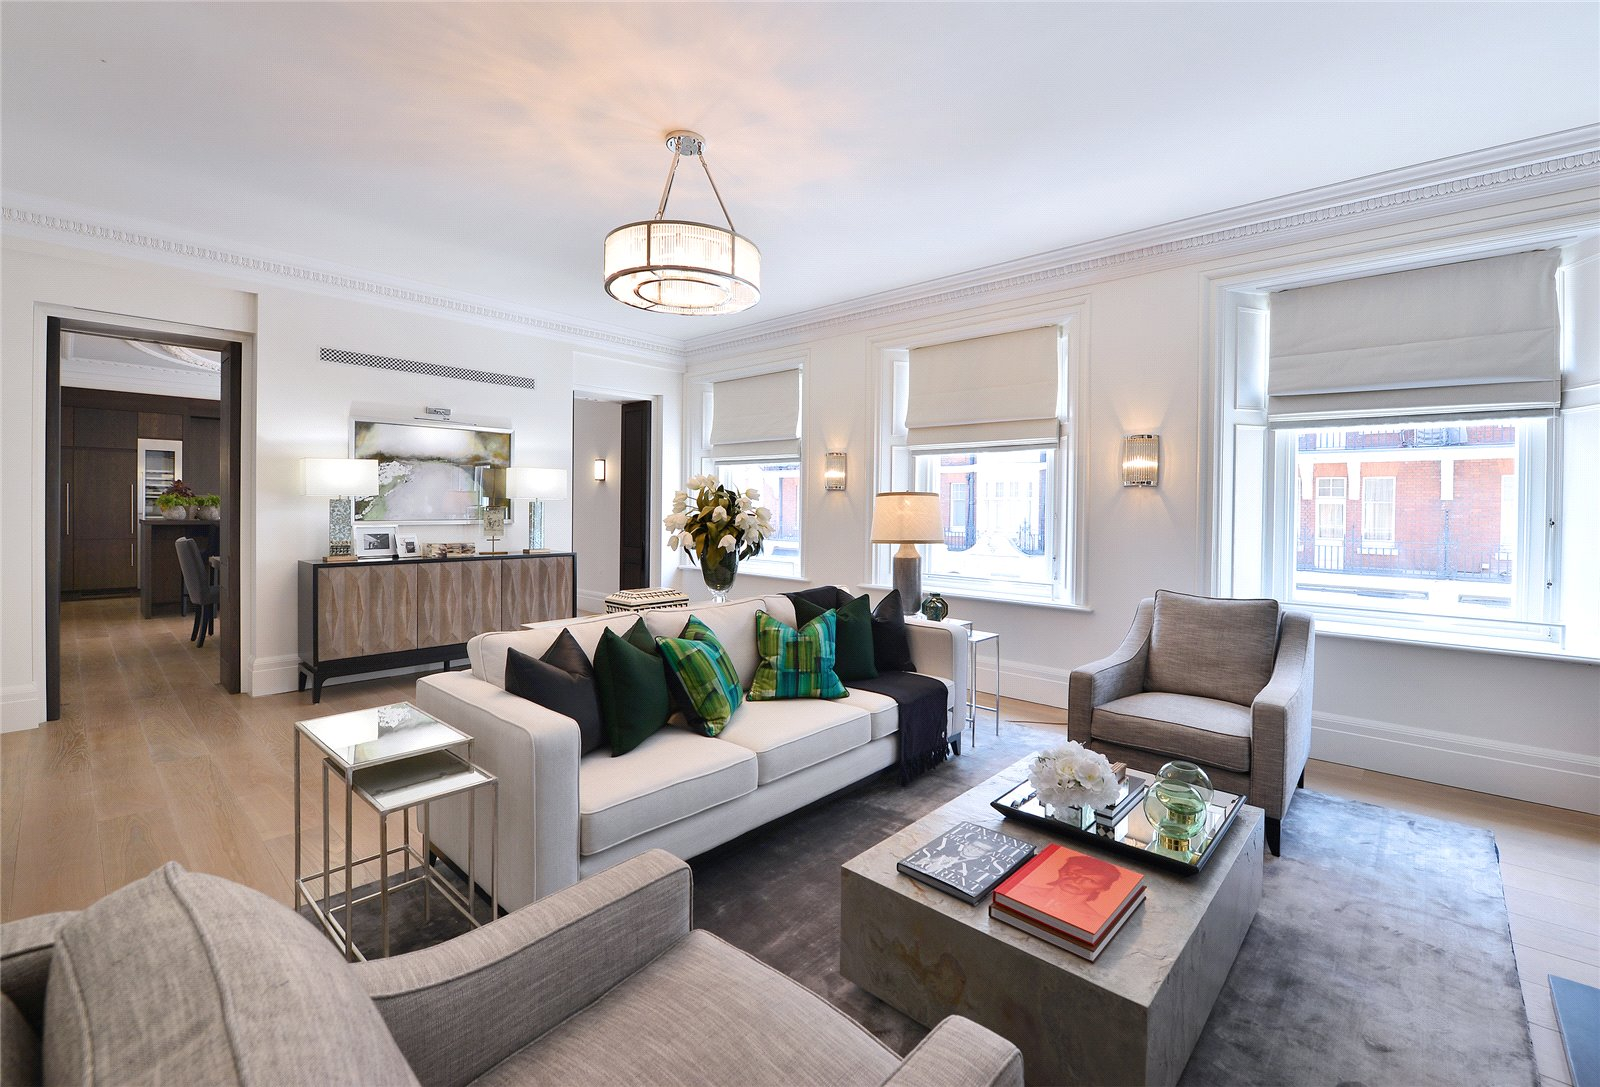 Apartment for Rent at Duke Street, Mayfair, London, W1K Duke Street, Mayfair, London, W1K